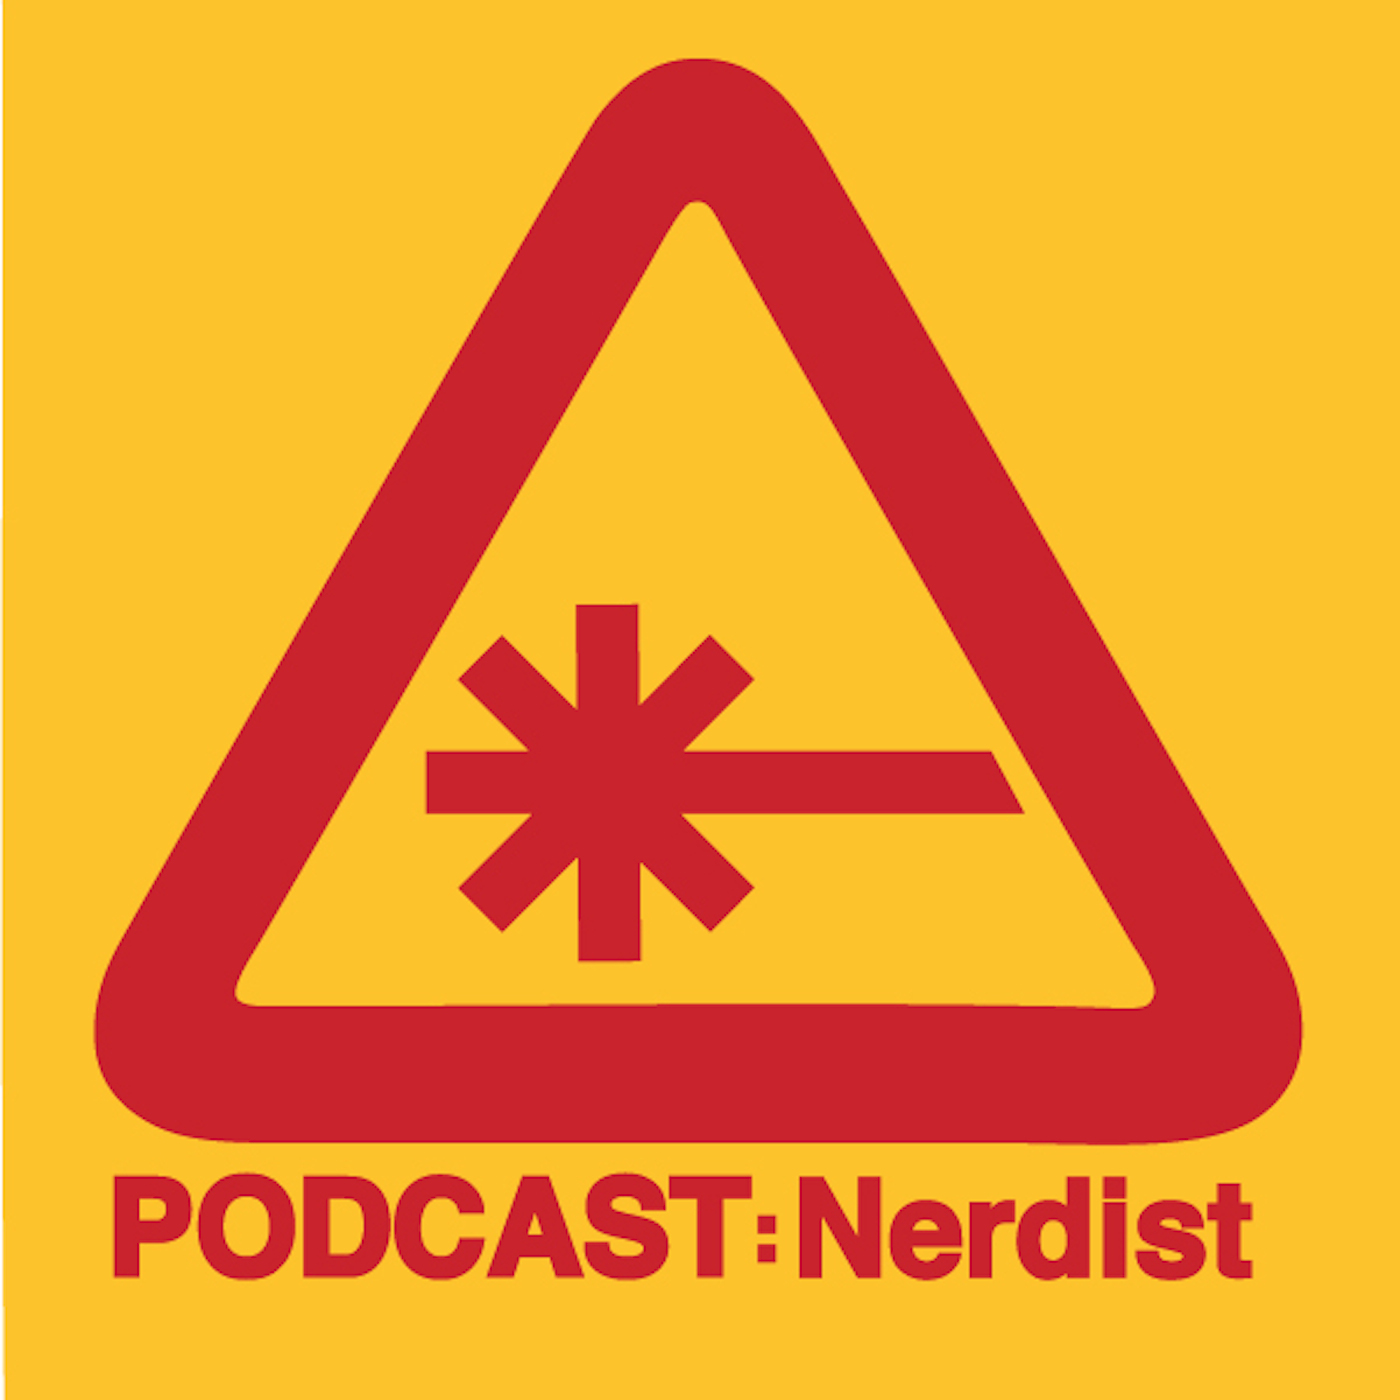 The Nerdist PodcastEpisode 920: Dana Gould and Janet Varney(November 24th, 2017) - Dana Gould and Janet Varney chat with Chris about how dolphins and whales would talk to each other, getting trick or treaters on Halloween and how Janet is a good singer but never sings. They also talk about their early days of comedy, meeting their heroes and the new season of Stan Against Evil!